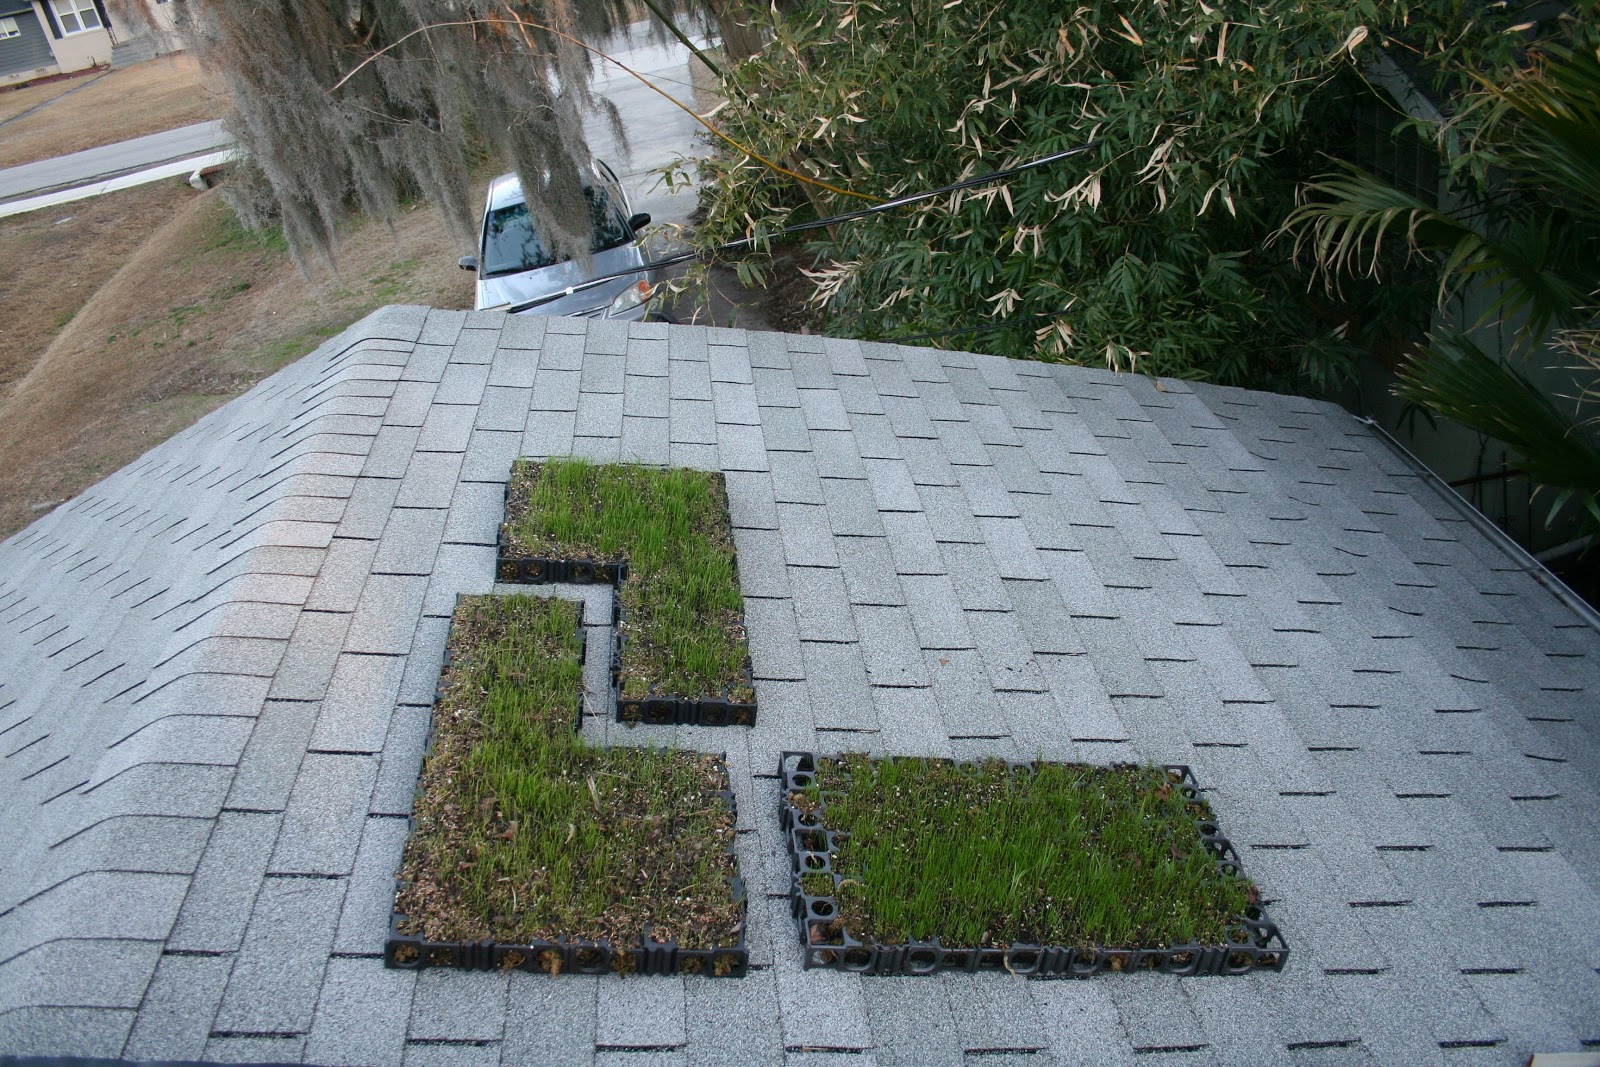 Kevin Songer Wheat Grass Green Roof Modules And Feeding